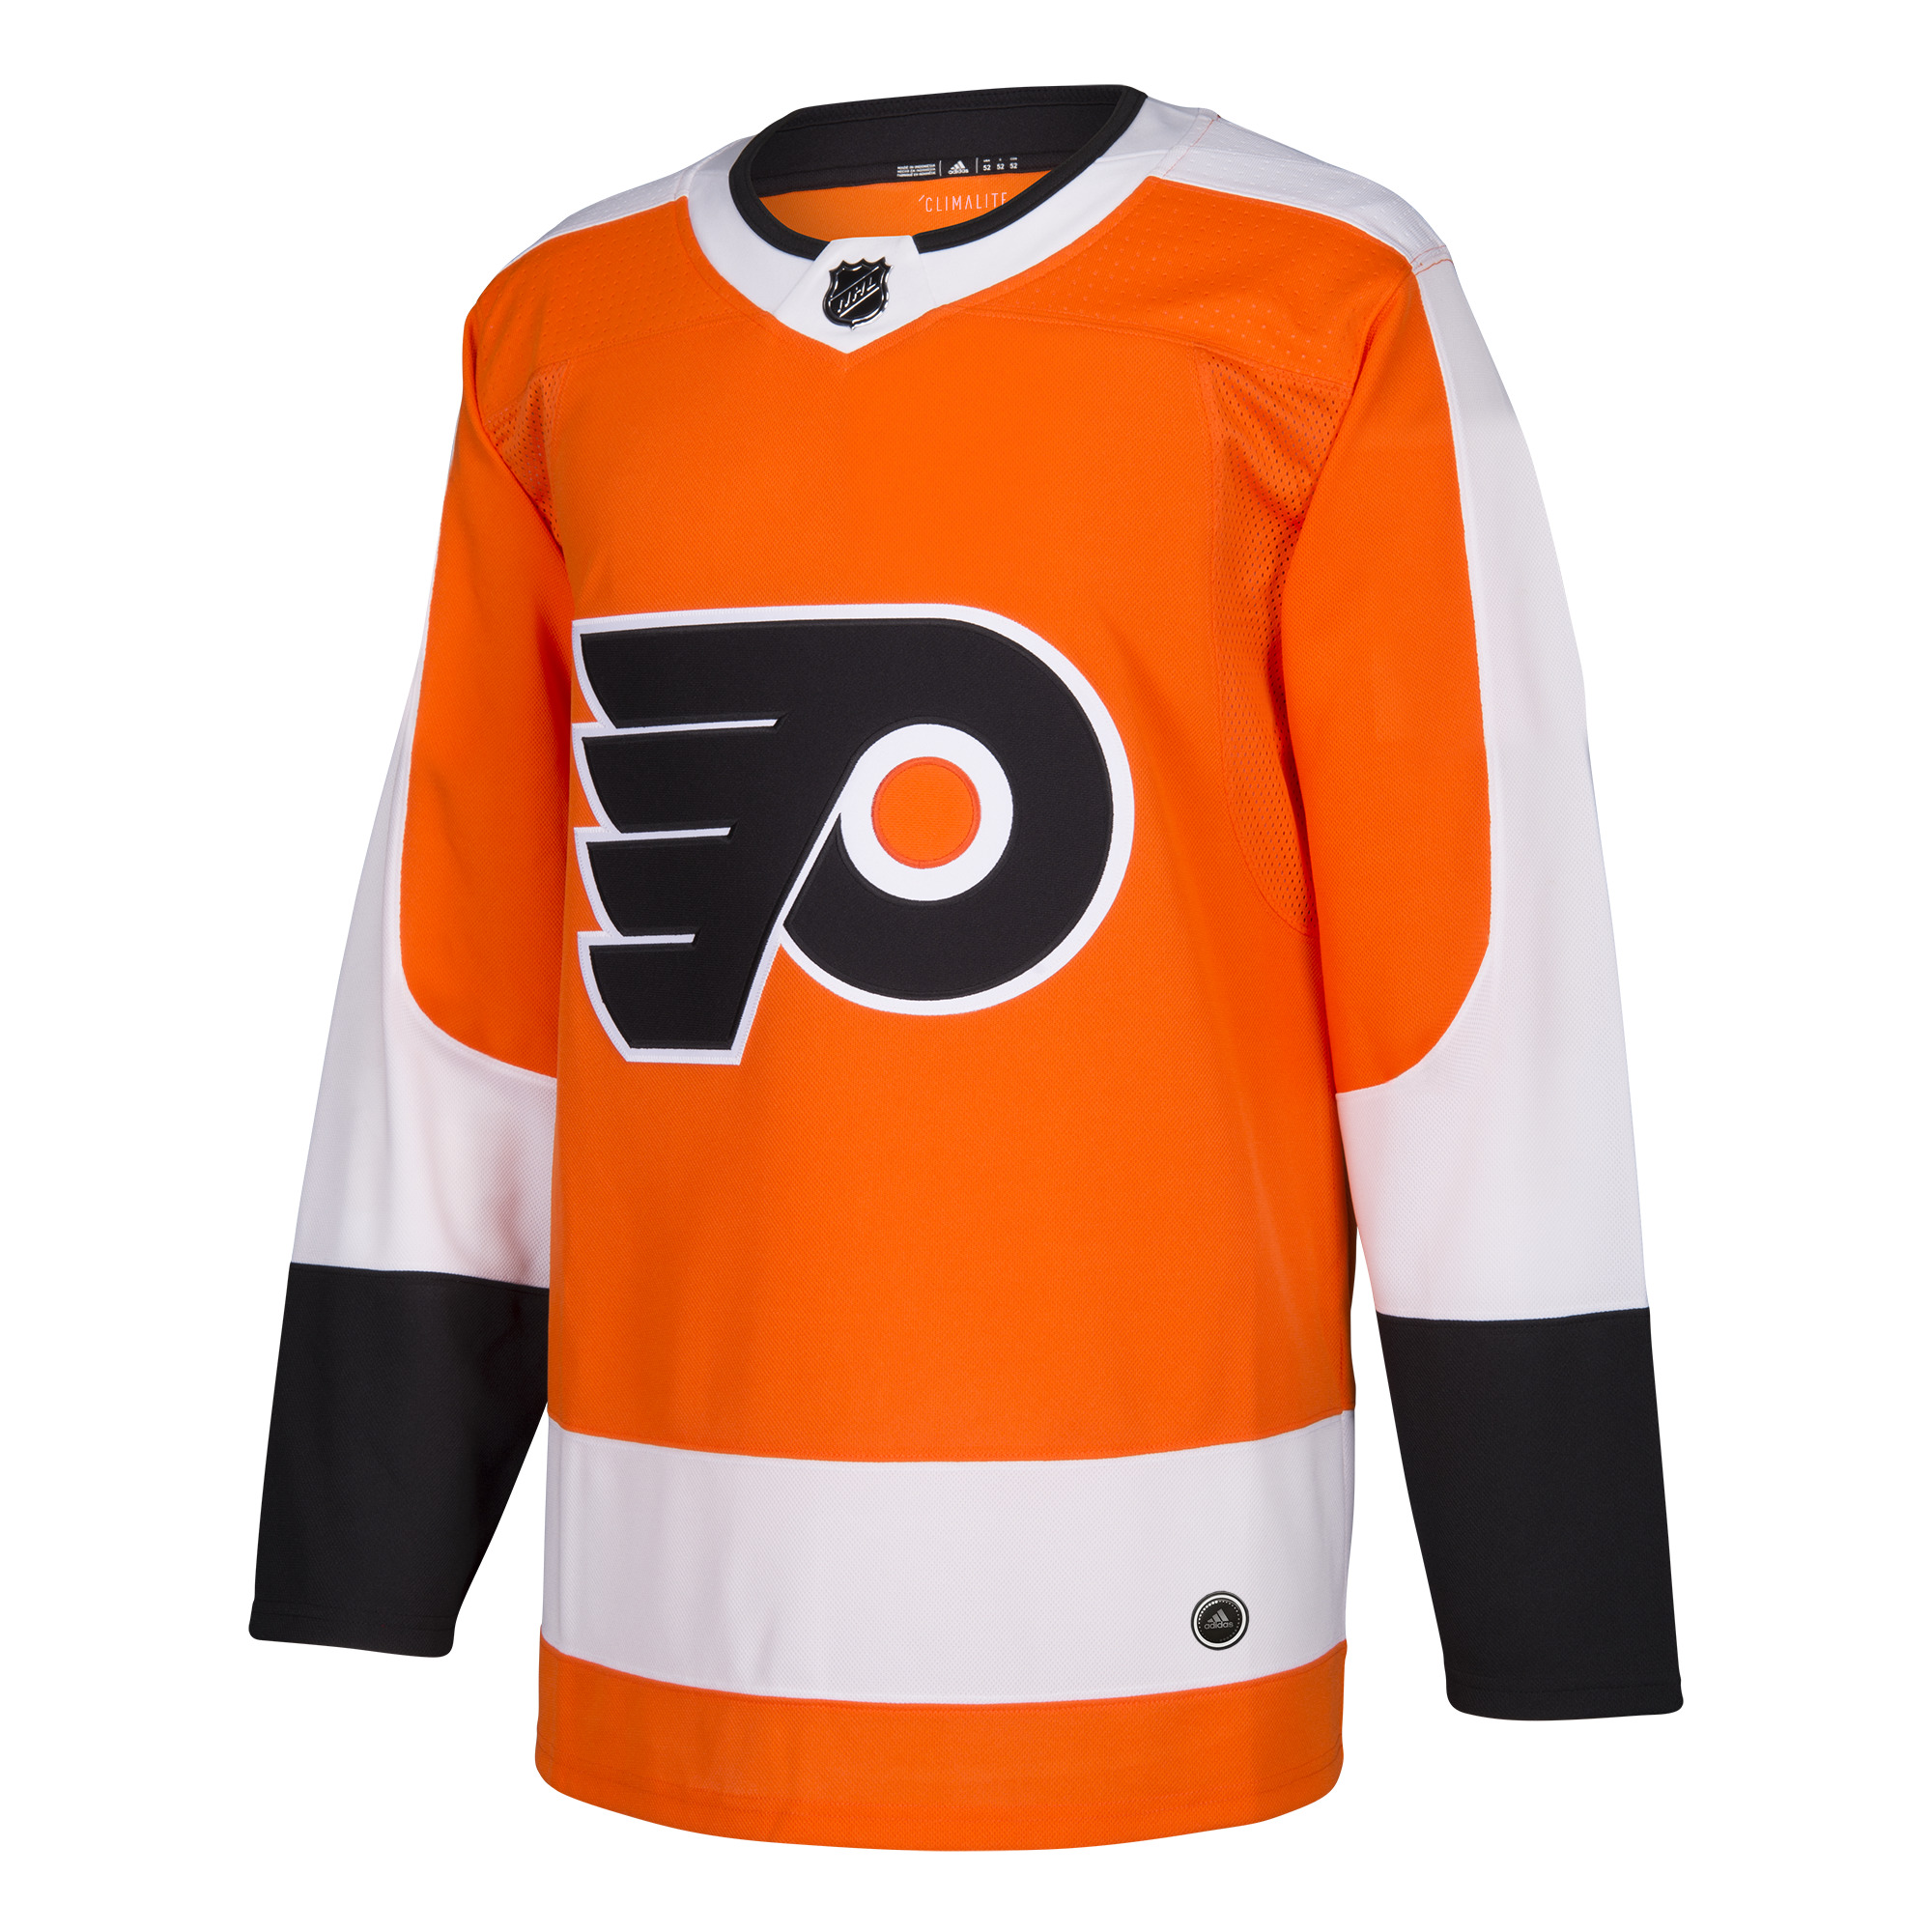 save off 22feb 2d1d4 Philadelphia Flyers Men's 2019 Stadium Series Gostisbehere Jersey by Adidas